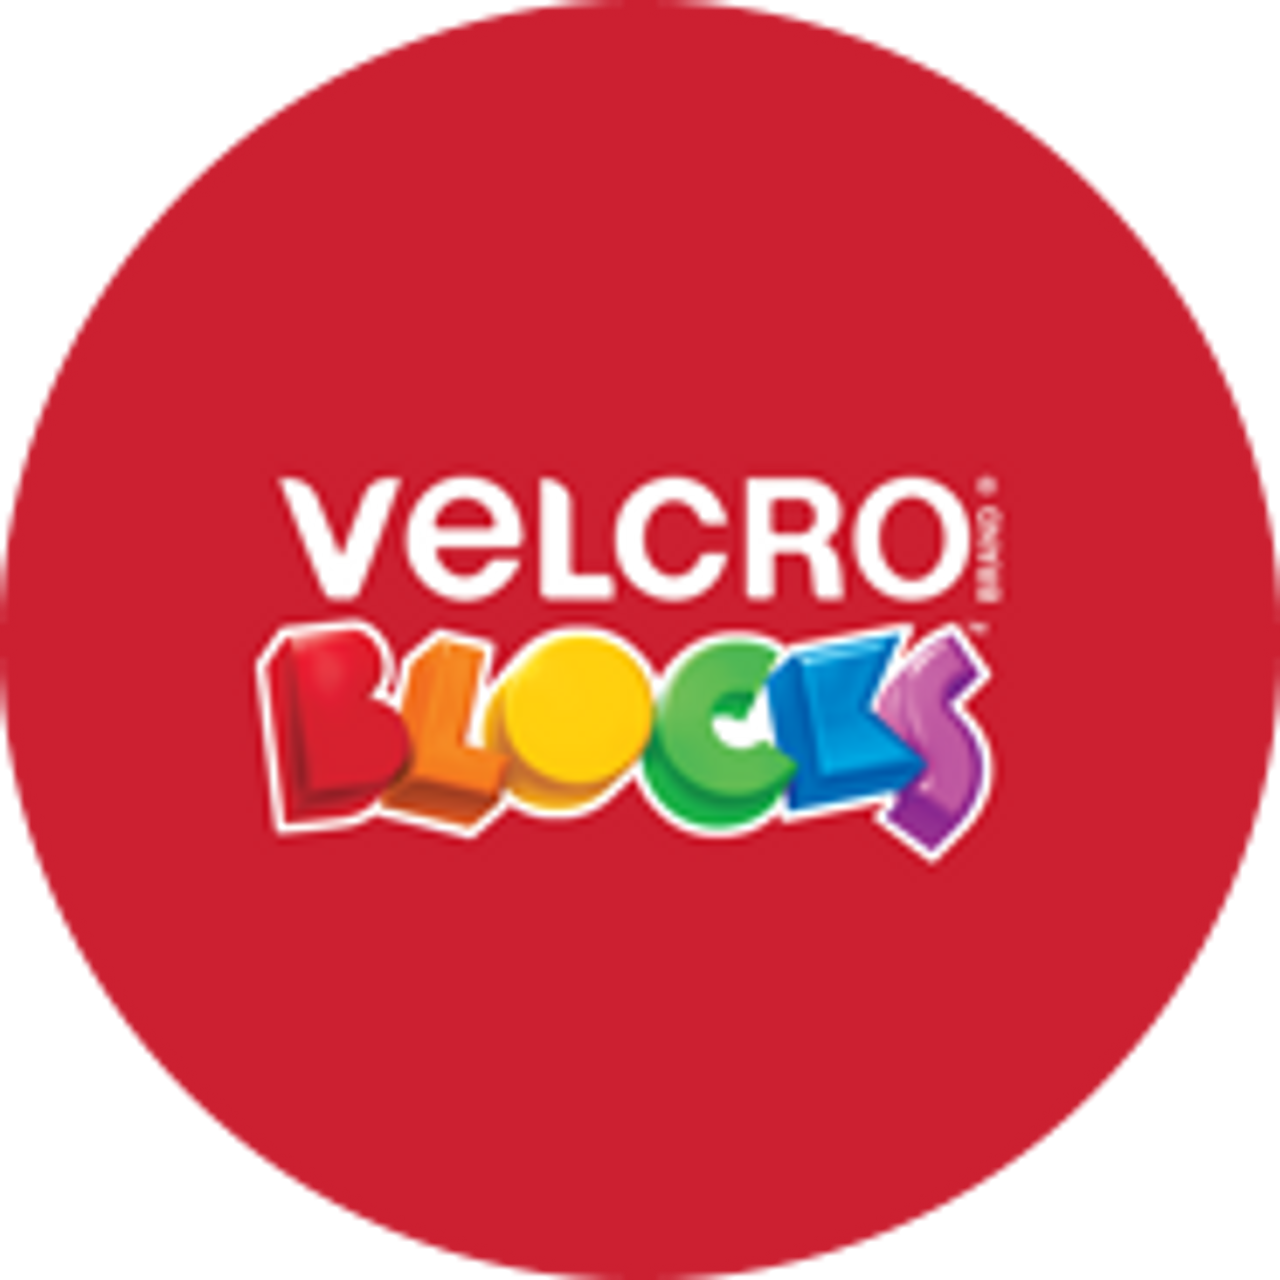 Velcro Blocks